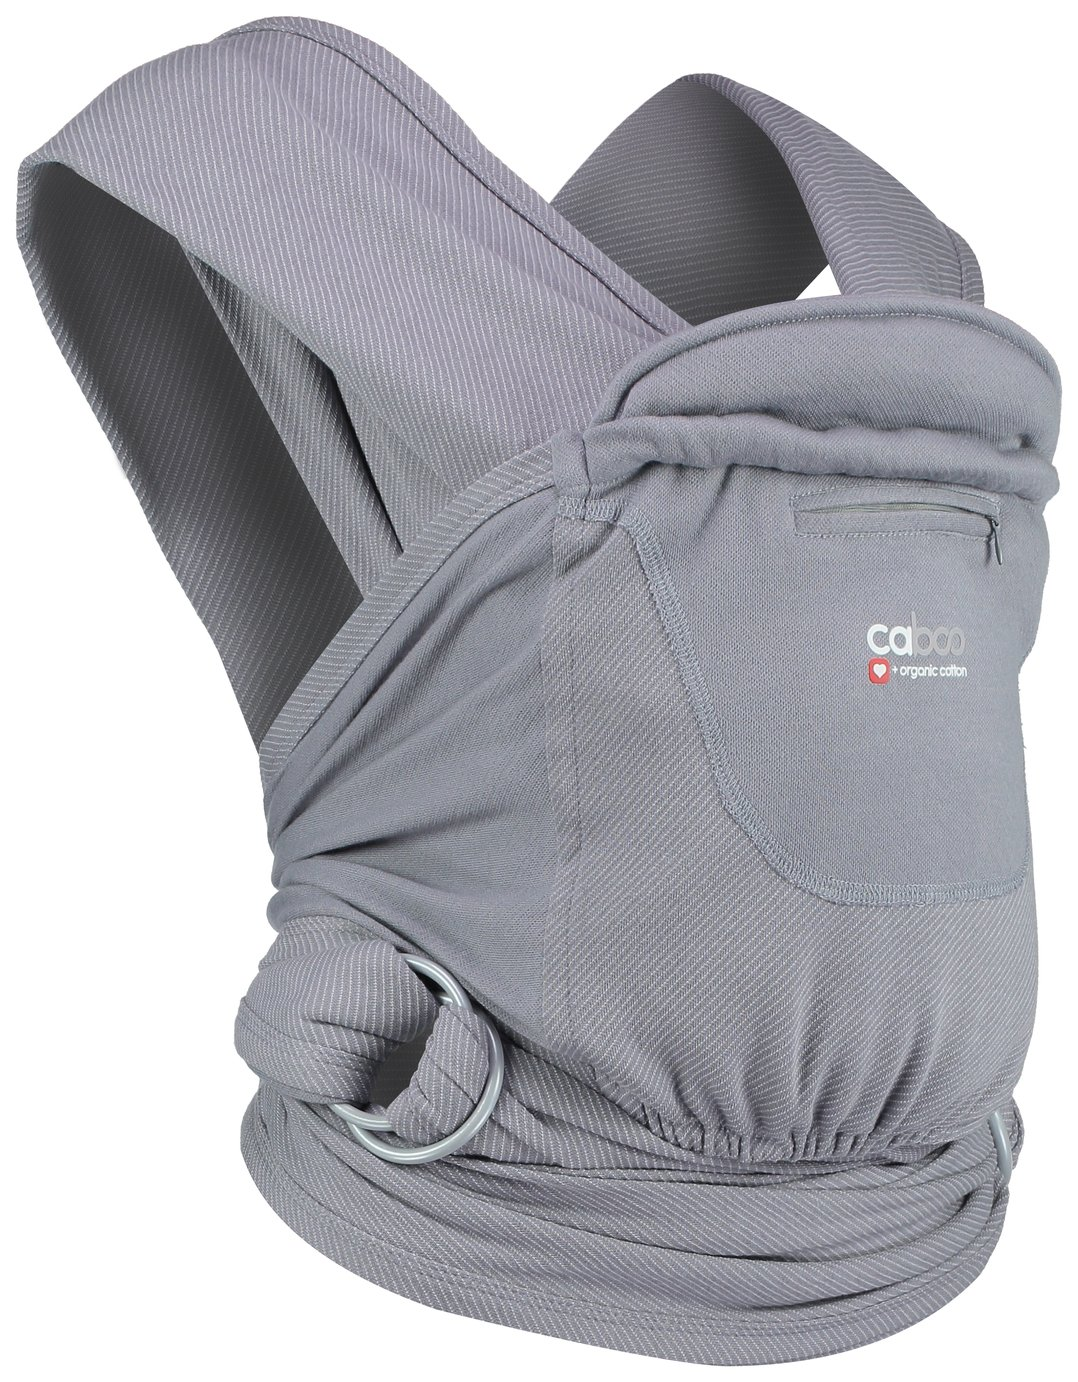 Cabboo + Organic Stripe Newborn Carrier - Titanium